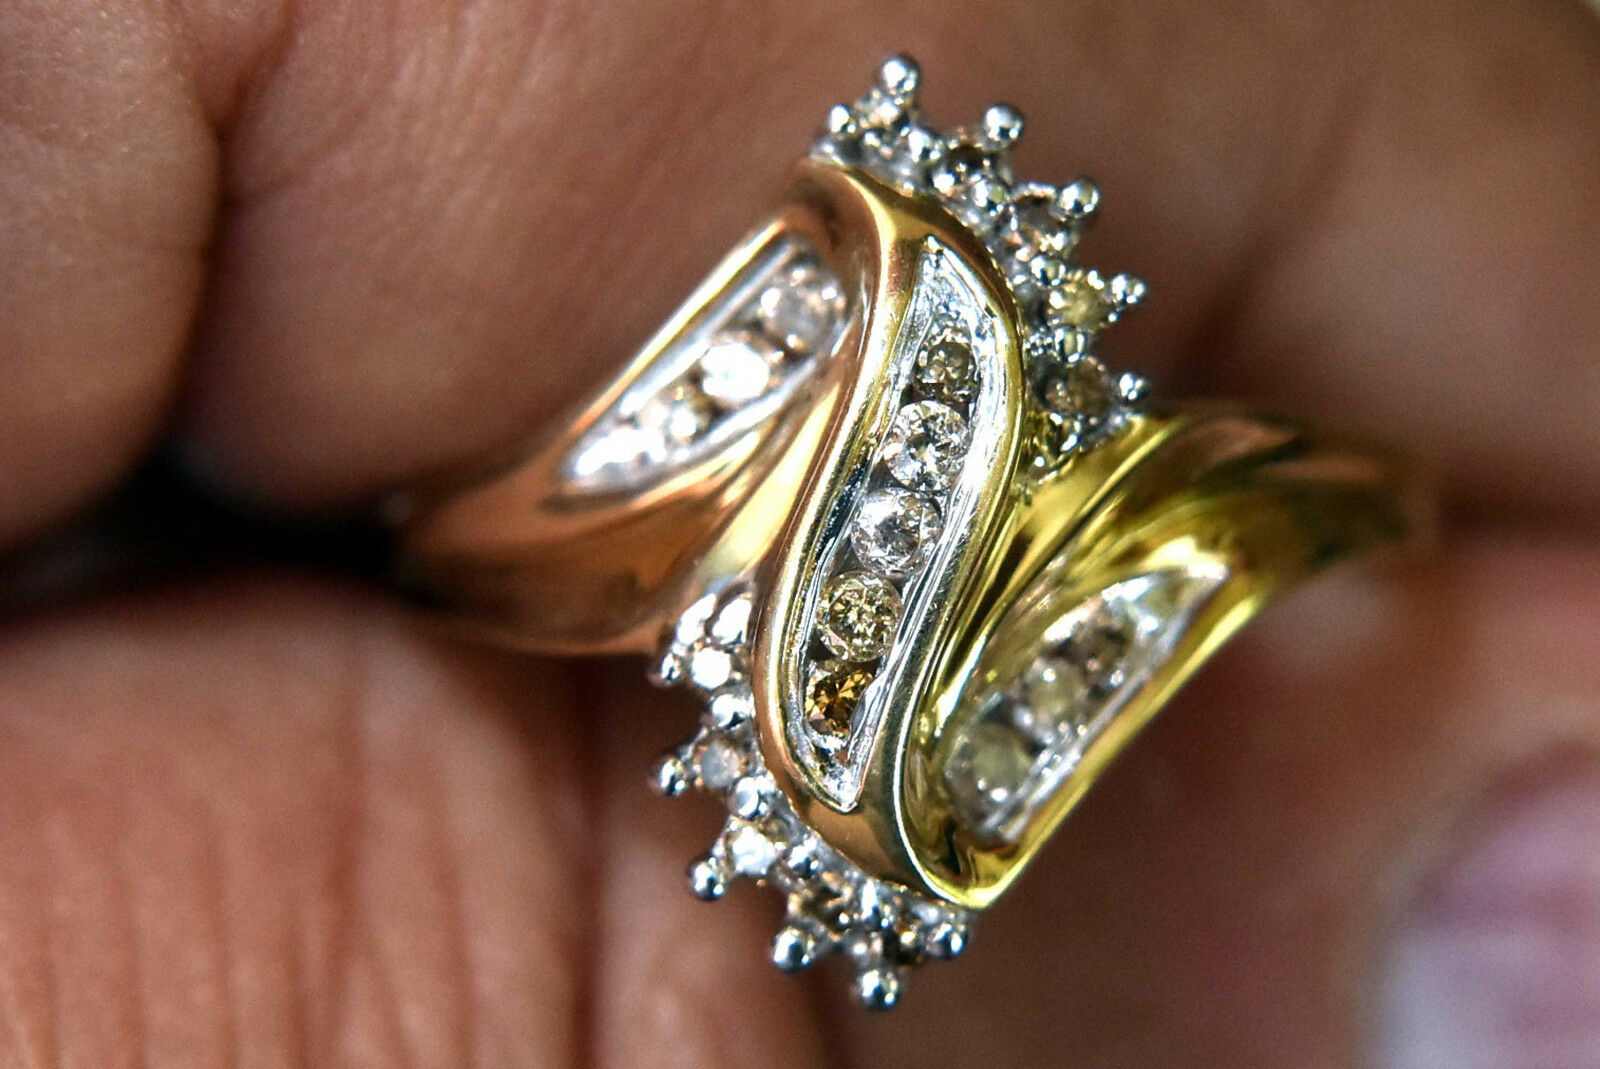 10K Solid gold and Natural Diamonds Ring Size 7